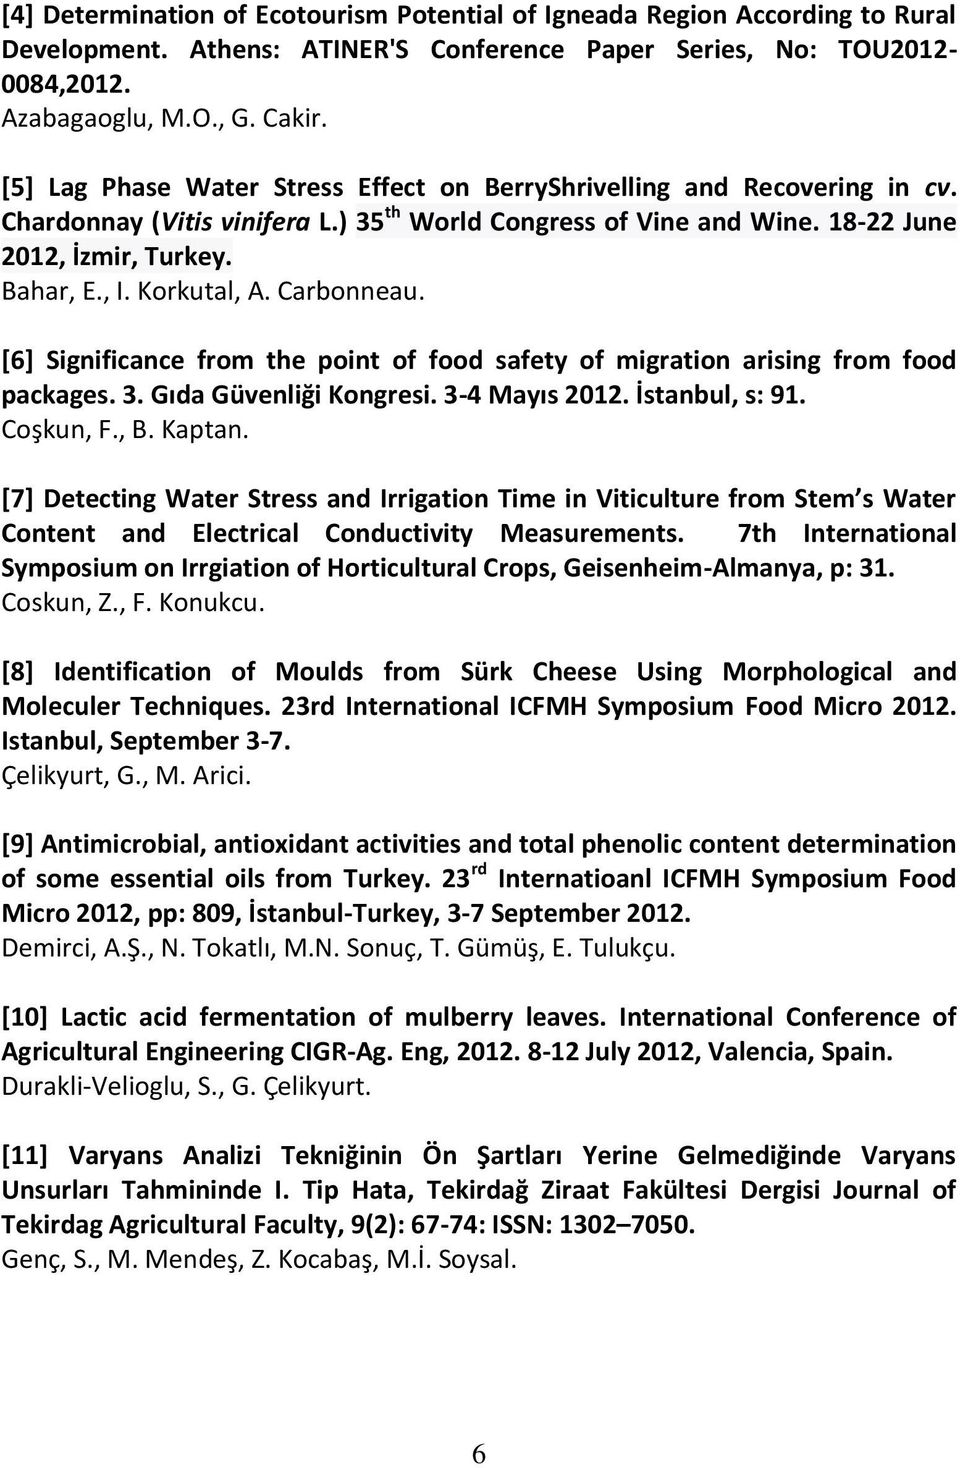 Korkutal, A. Carbonneau. [6] Significance from the point of food safety of migration arising from food packages. 3. Gıda Güvenliği Kongresi. 3-4 Mayıs 2012. İstanbul, s: 91. Coşkun, F., B. Kaptan.